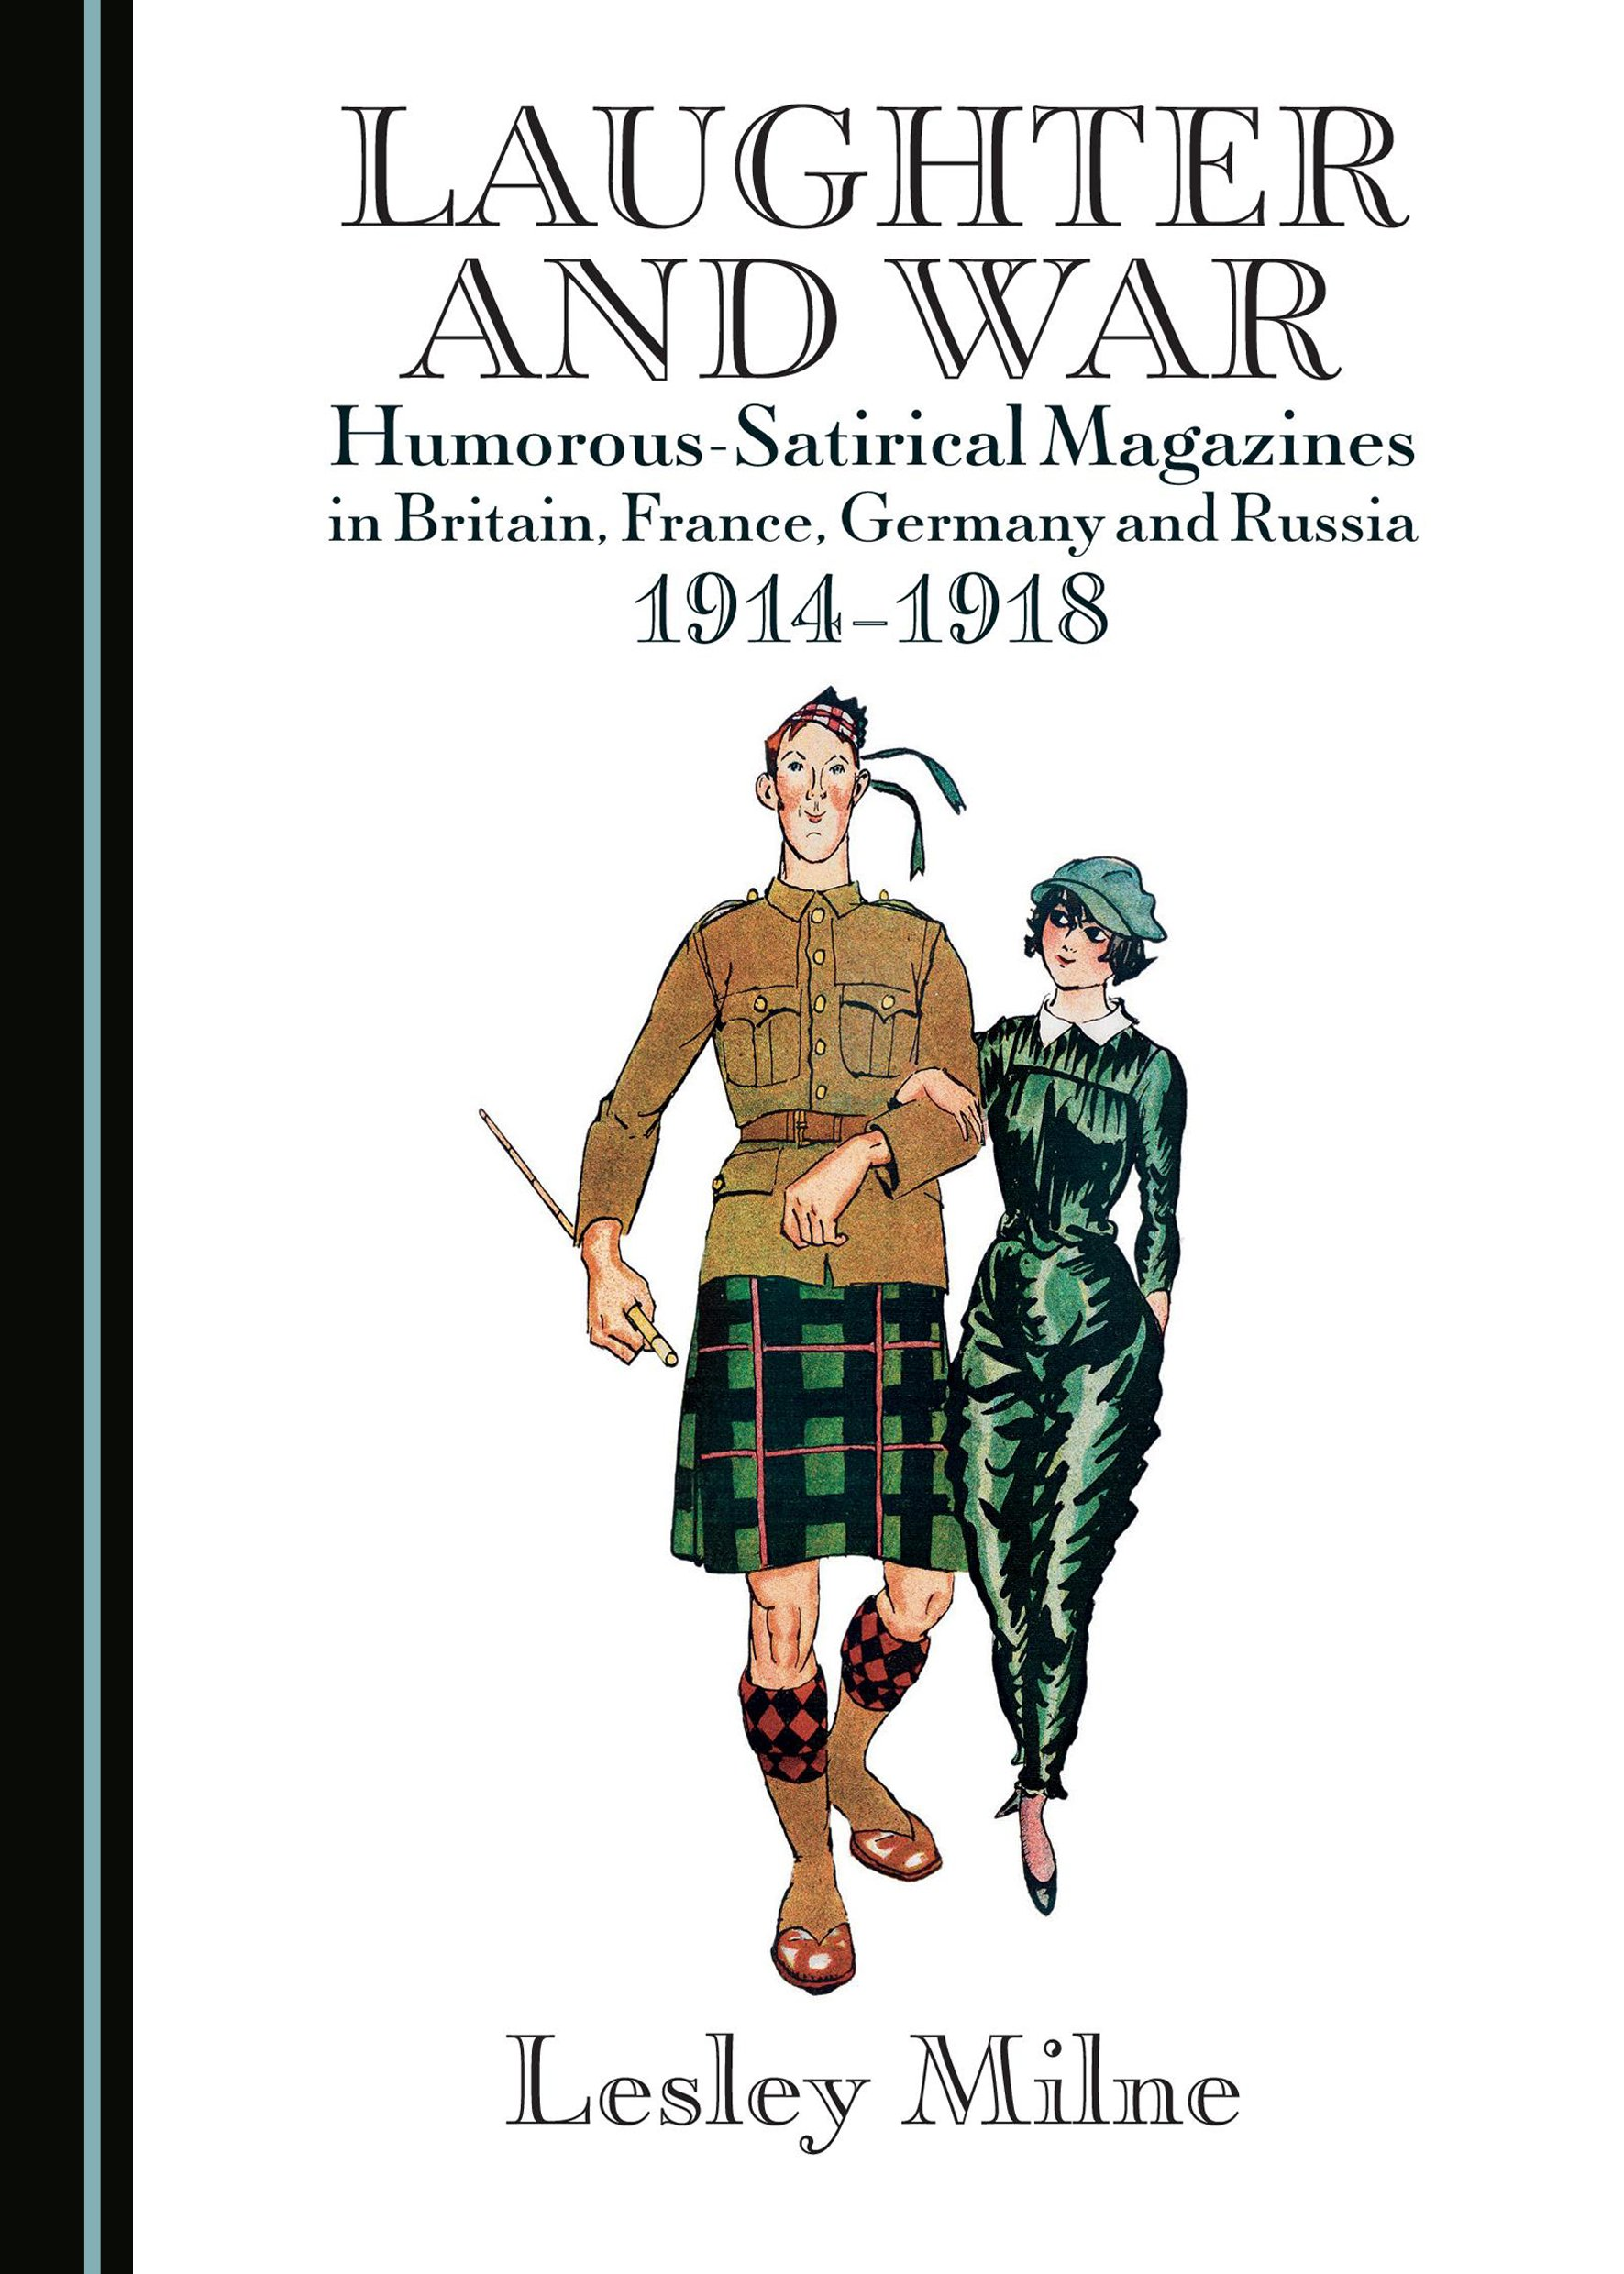 Laughter and War: Humorous-Satirical Magazines in Britain, France, Germany and Russia 1914–1918